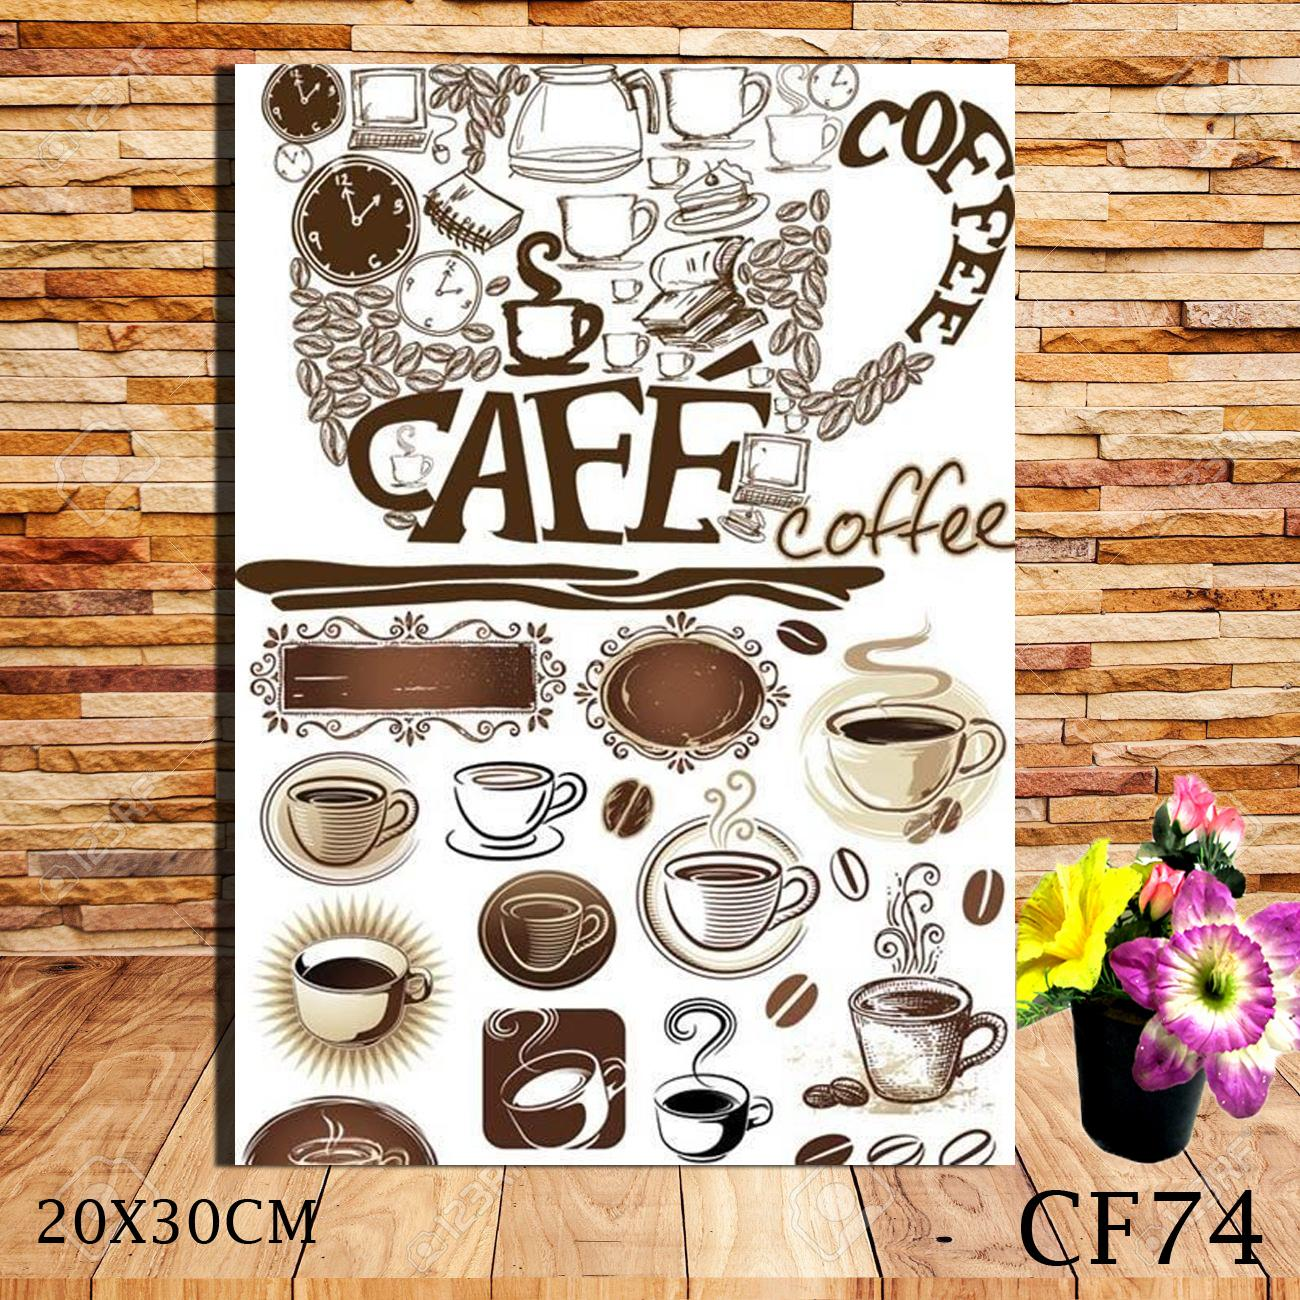 HIASAN DINDING POSTER KAYU WALL DECOR CAFE COFFEE VINTAGE